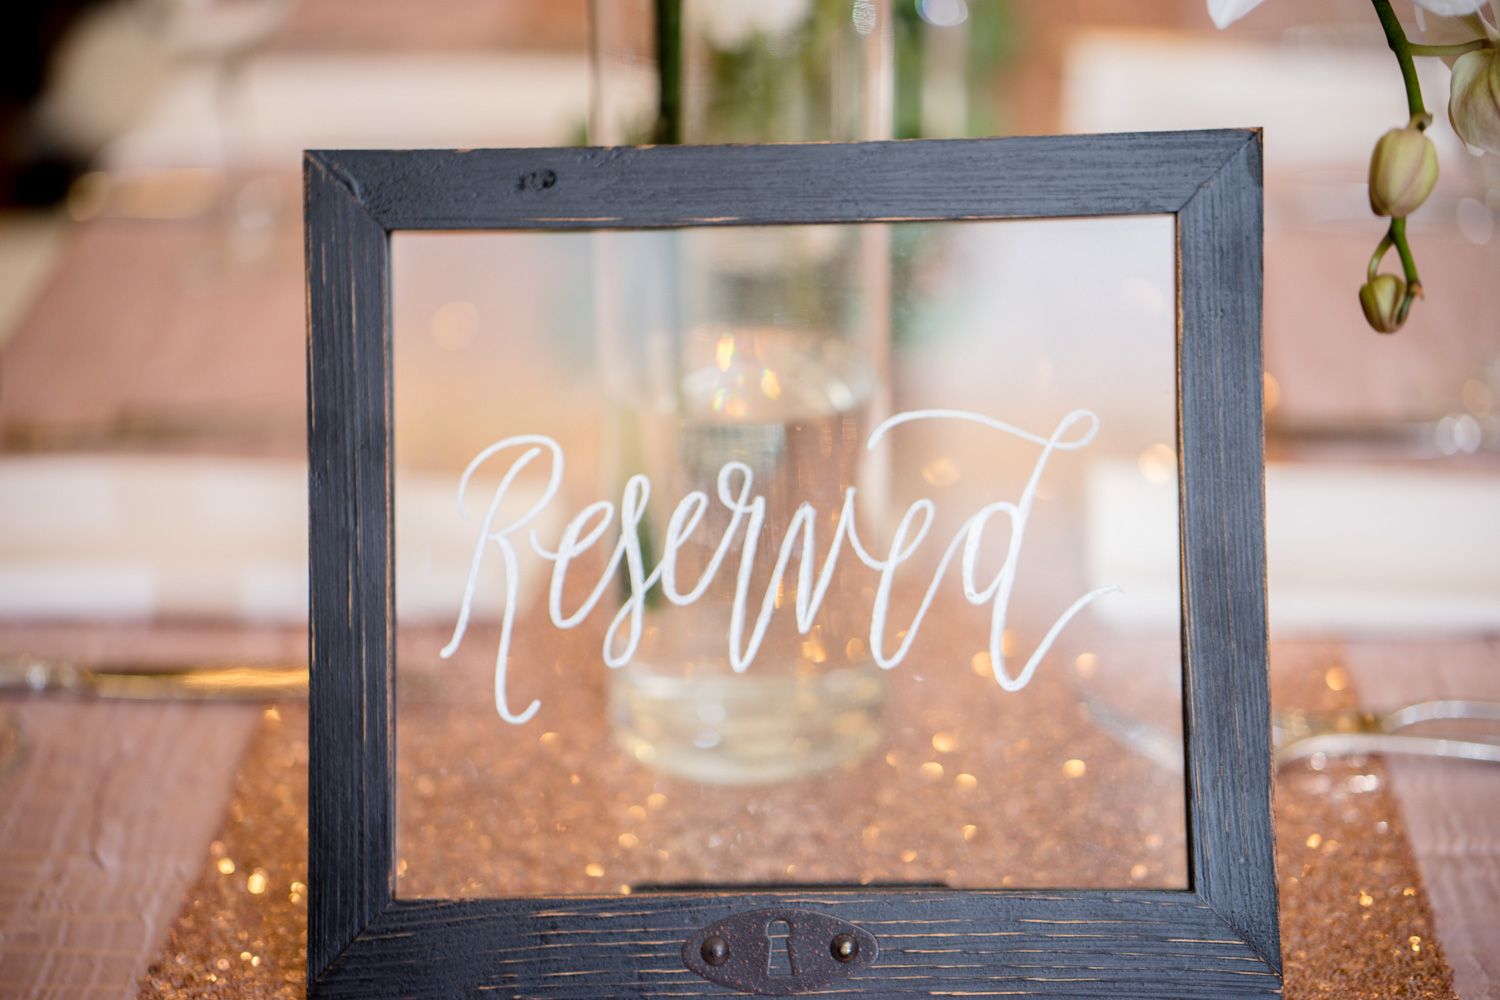 Interesting use of vintage photo frames as reserved tags during Muslim Wedding Reception.